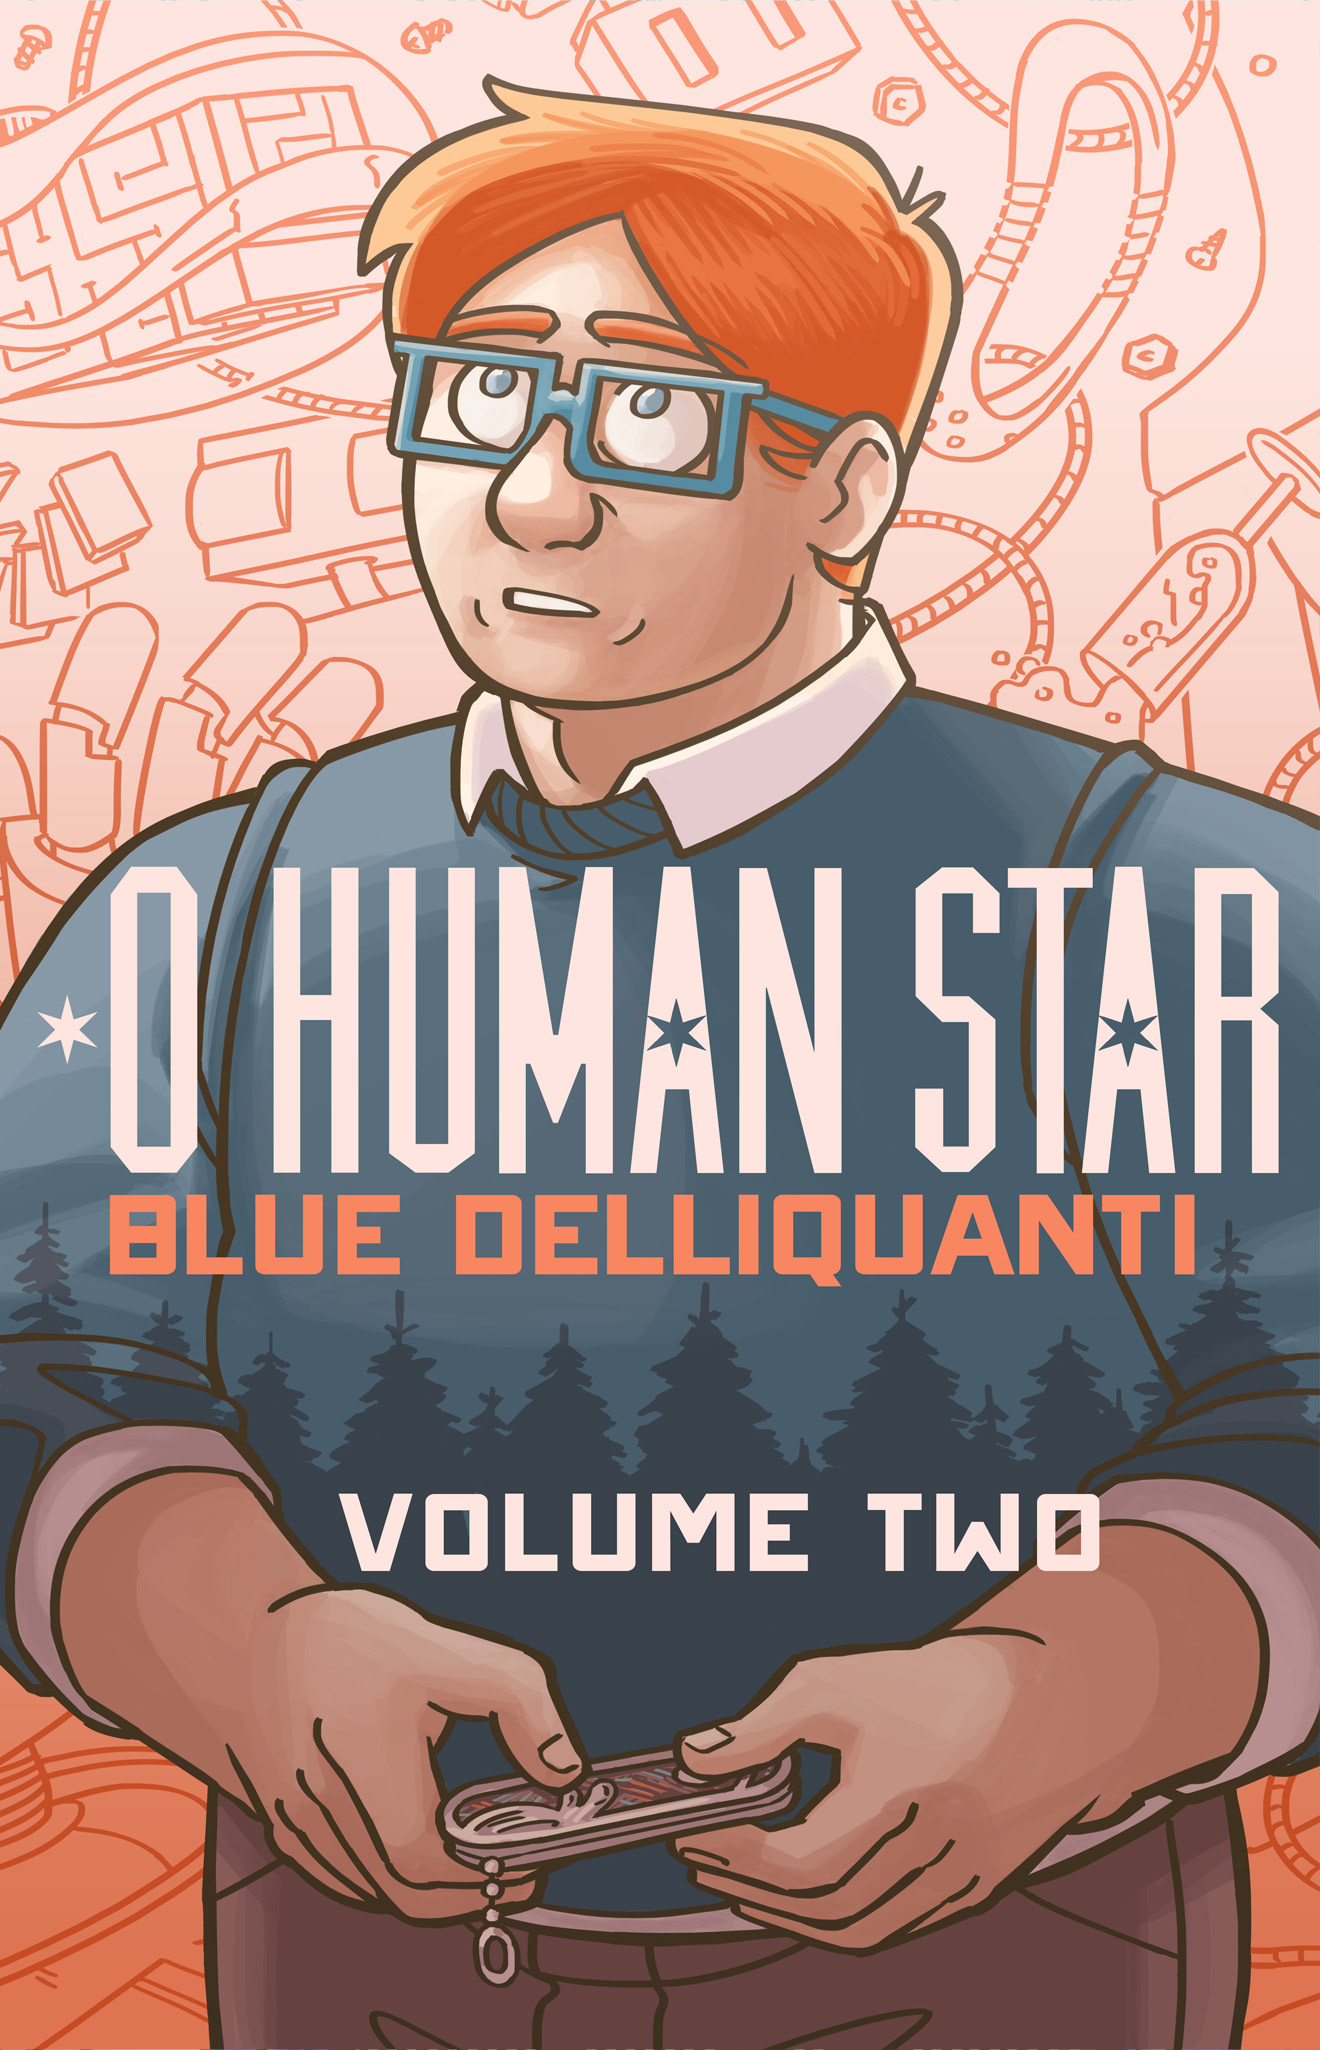 - O HUMAN STAR - Volume Two(2017)2018 Prism Award Winner2017 James Tiptree Jr. Award longlist honoreeAlastair Sterling was the inventor who sparked the robot revolution. And because of his sudden death, he didn't see any of it.That is, until he wakes up 16 years later in a robot body that matches his old one exactly. Until he steps outside and finds a world utterly unlike the one he left behind – a world where robots live alongside their human neighbors and coexist in their cities. A world he helped create.Now Al must track down his old partner Brendan to find out who is responsible for Al's unexpected resurrection, but their reunion raises even more questions.Like who the robot living with Brendan is. And why she looks like Al. And how much of the past should stay in the past…